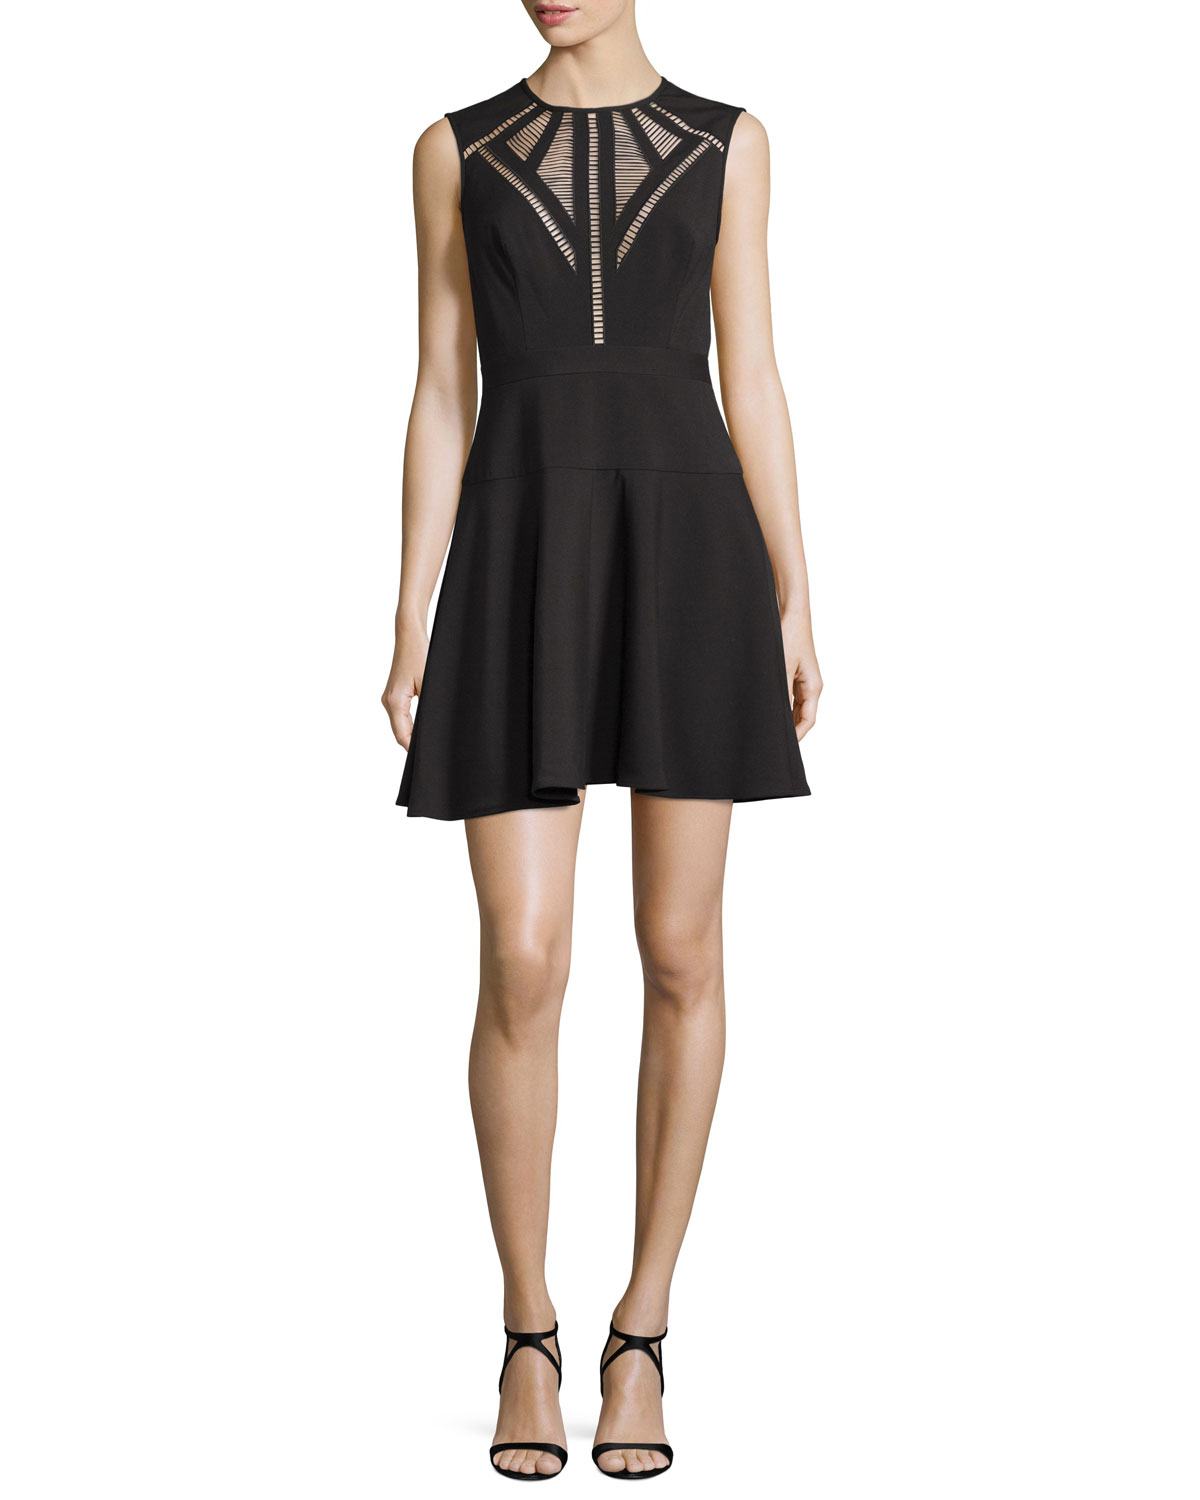 Aynn Pointelle-Inset Cocktail Dress, Black